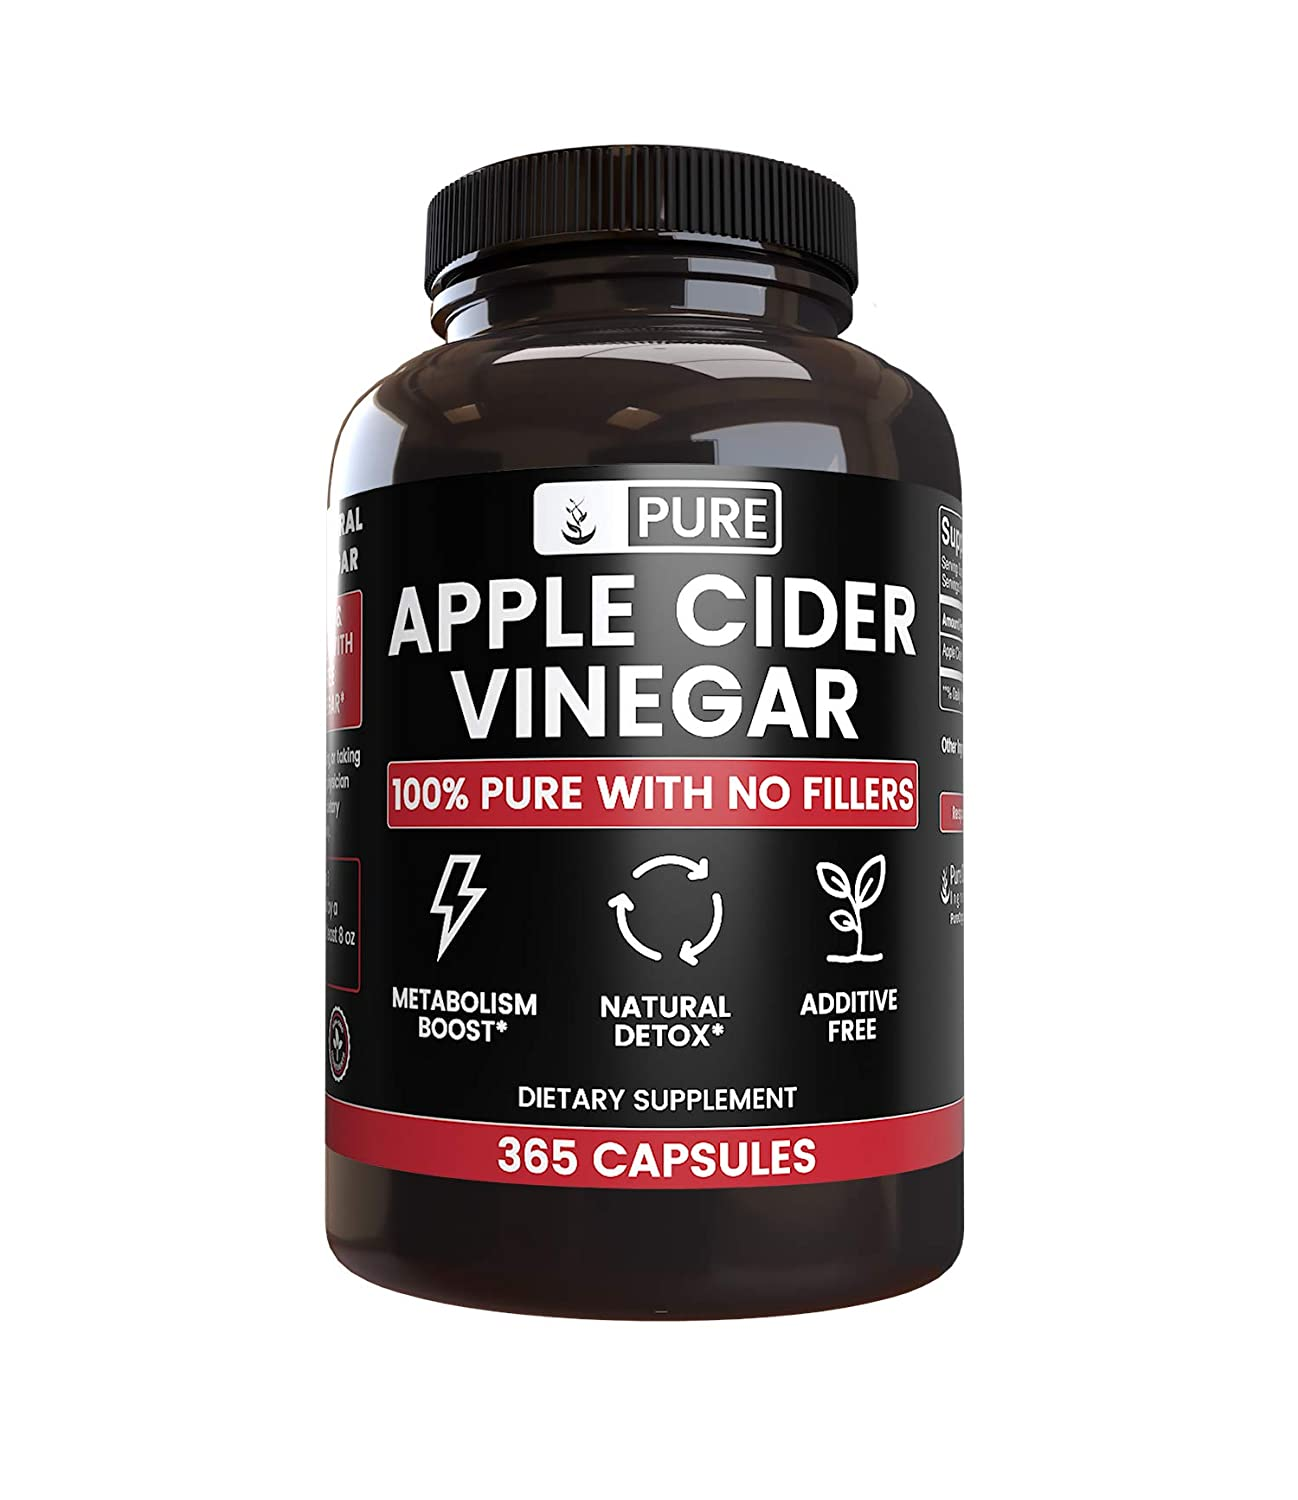 Raw 100 Natural Apple Cider Vinegar No Magnesium Stearate or Rice Fillers 365 Capsules 4 Month Supply, Non-GMO, Made in USA, 1,440 mg Undiluted ACV Powder with No Additives